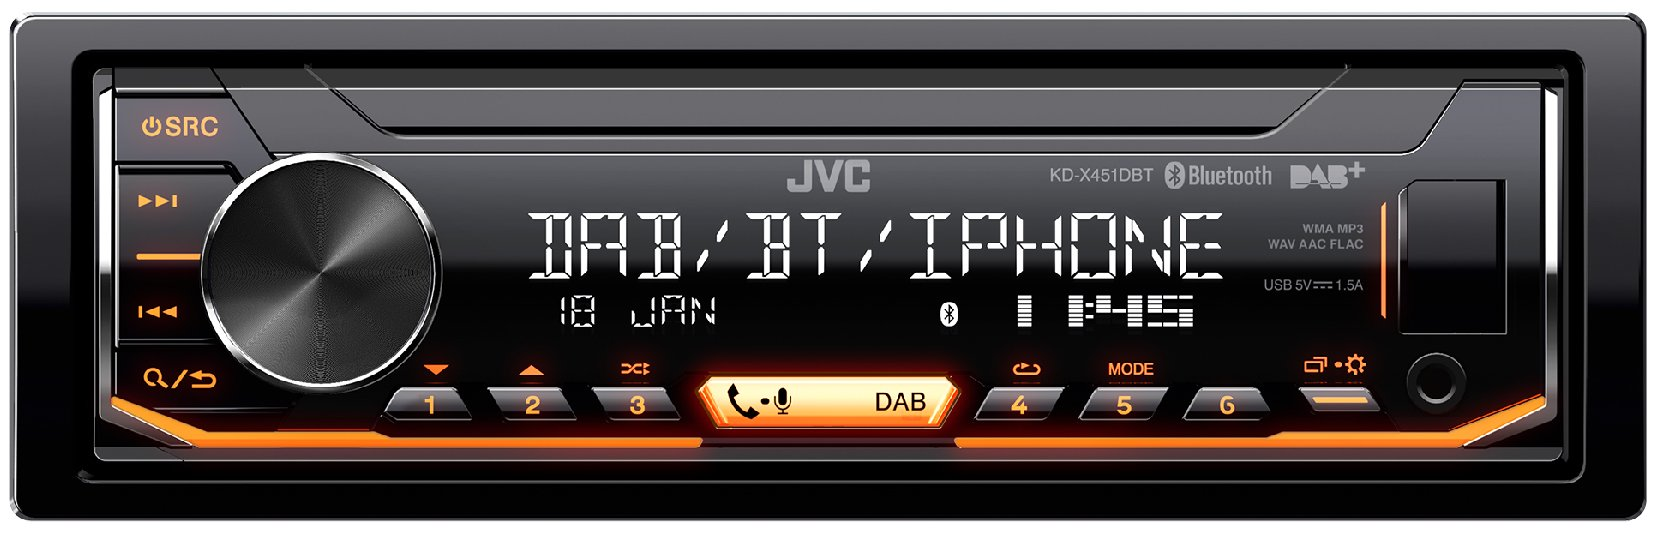 JVC-KD-X451DBT-Digital-Media-Receiver-mit-Bluetooth-Freisprechfunktion-und-Digitalradio-DAB-schwarz